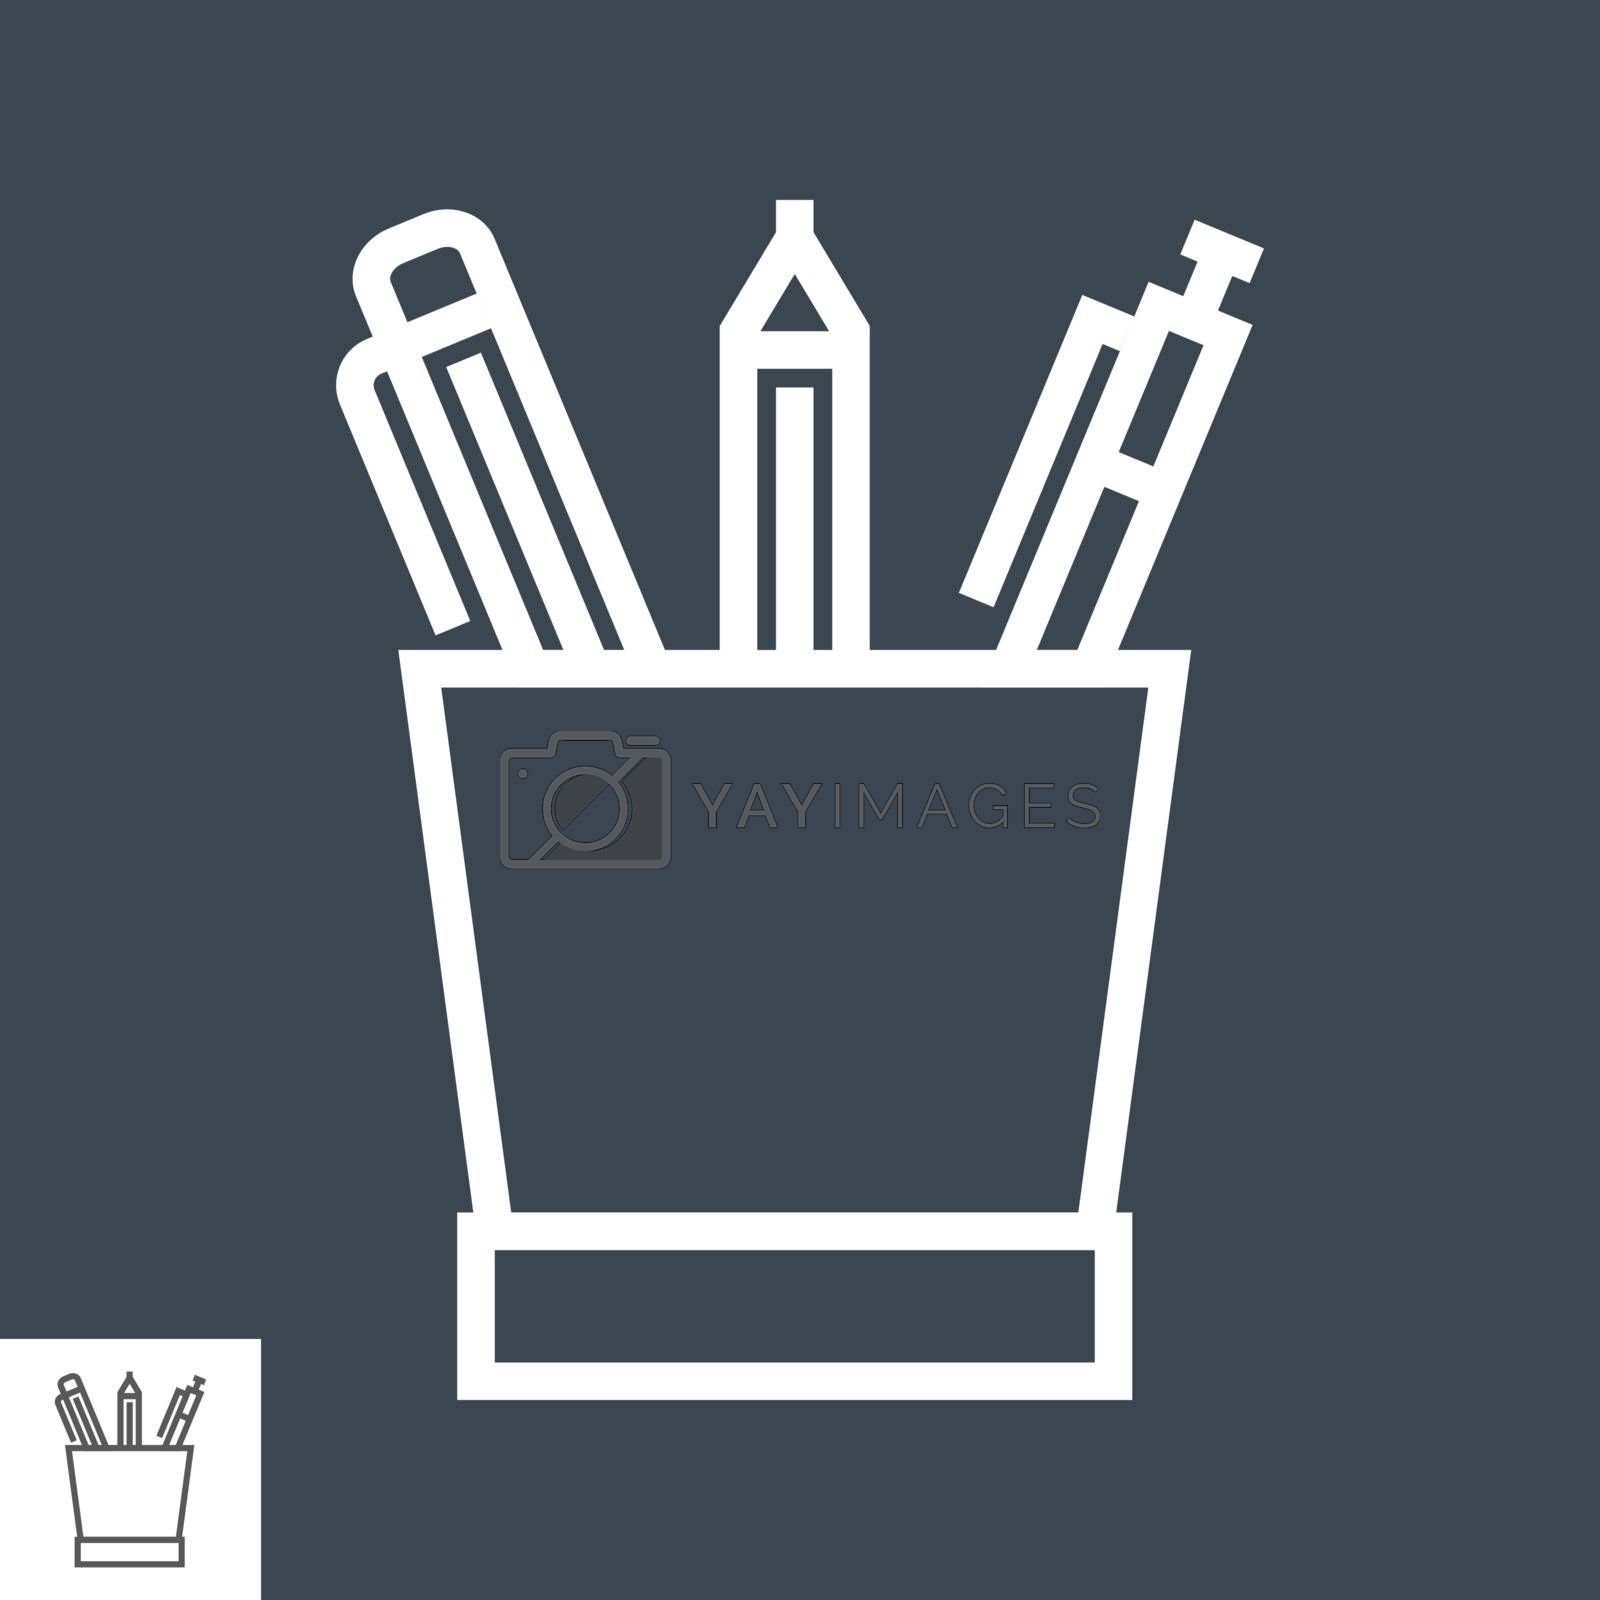 Pencil Stand Thin Line Vector Icon Isolated on the Black Background.